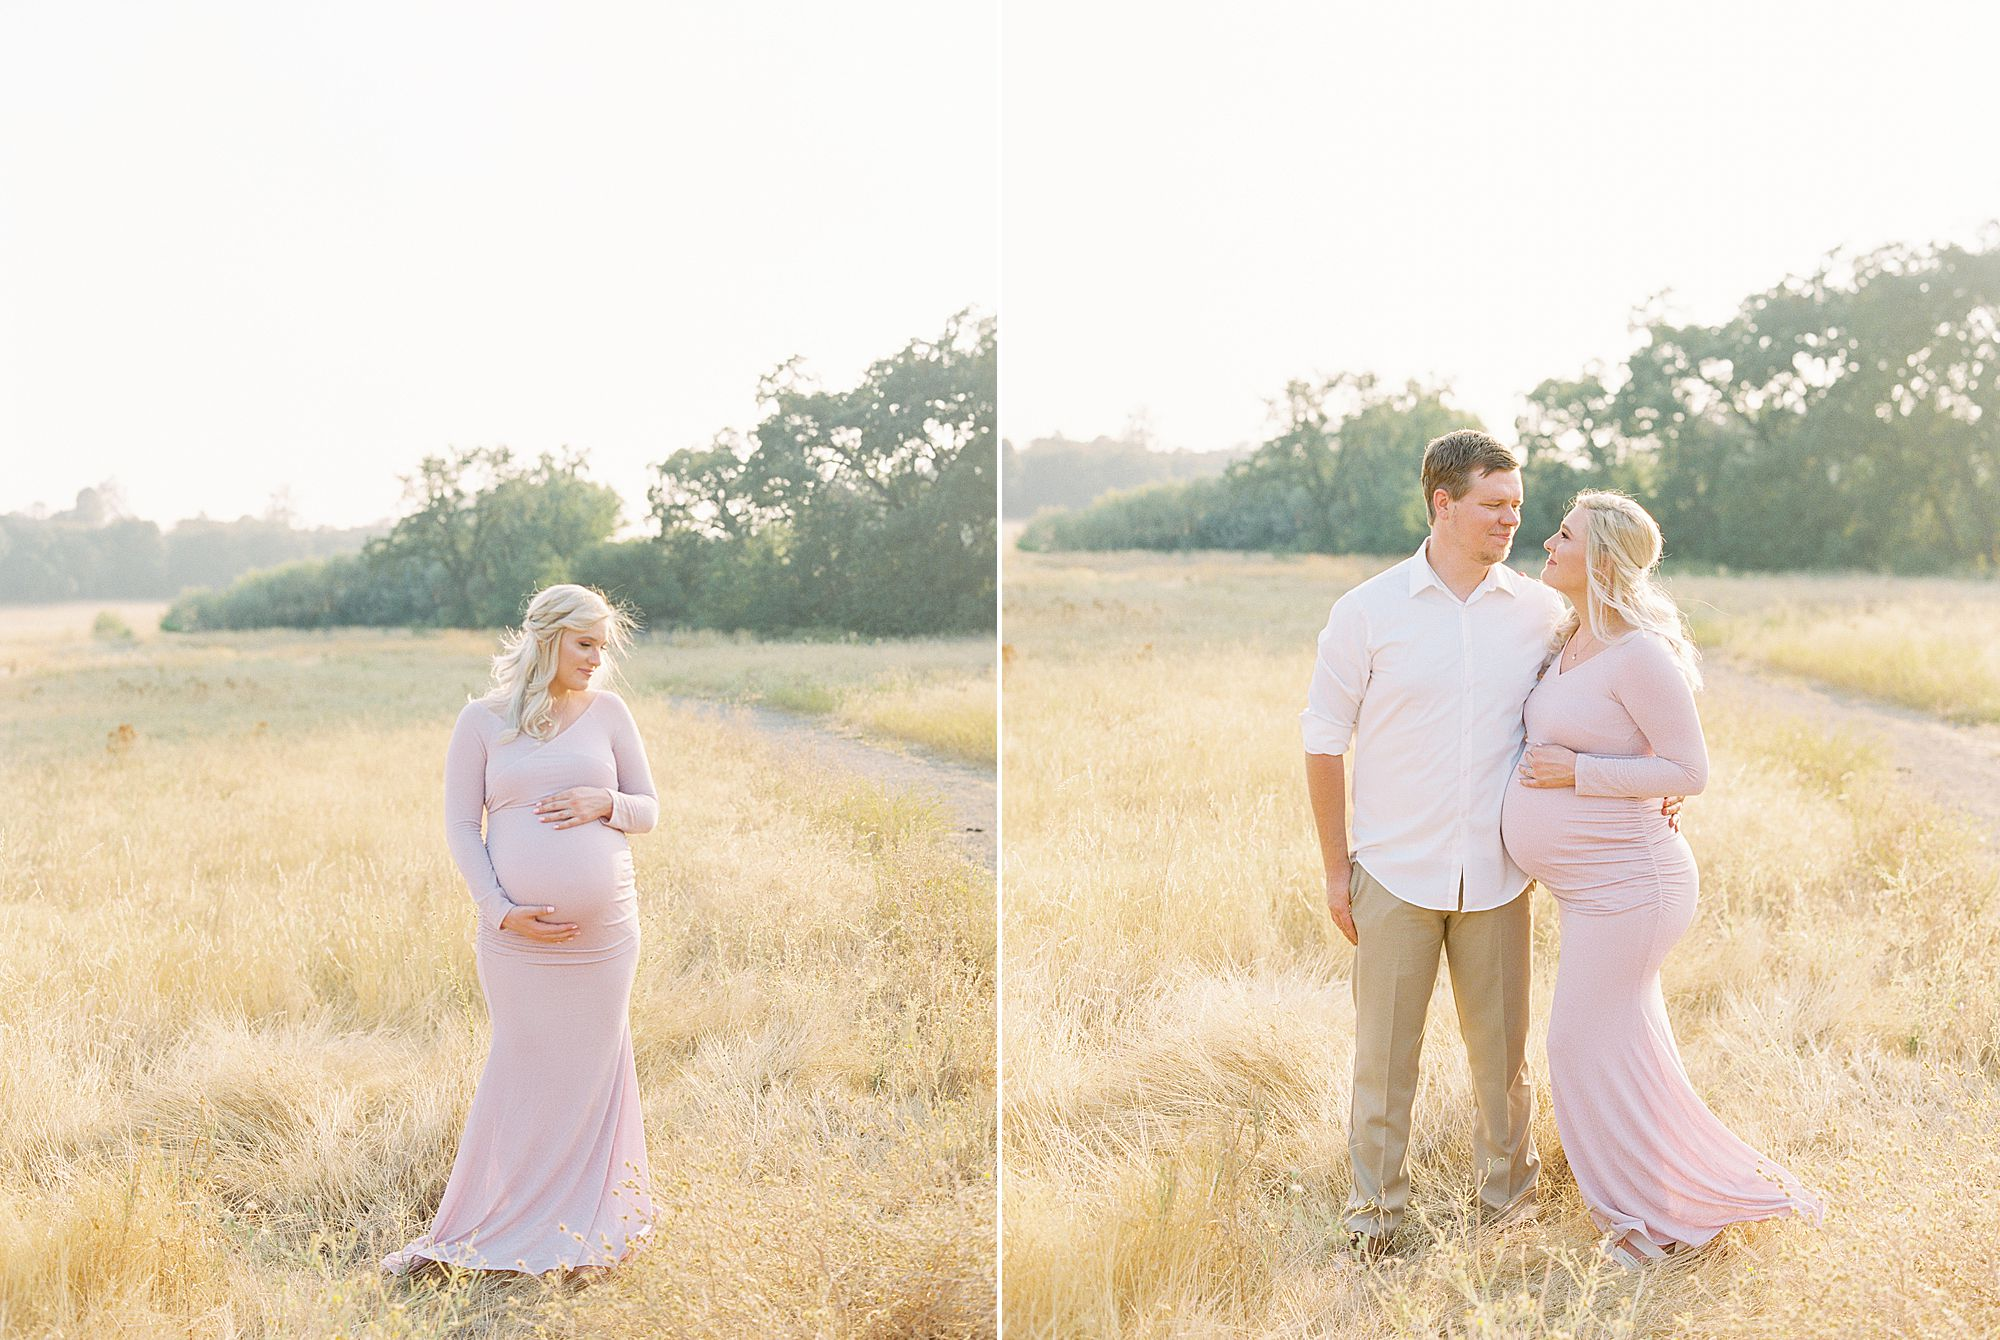 Golden Sacramento Maternity - Hannah and Connor - Ashley Baumgartner - Sacramento Maternity Photographer_0022.jpg